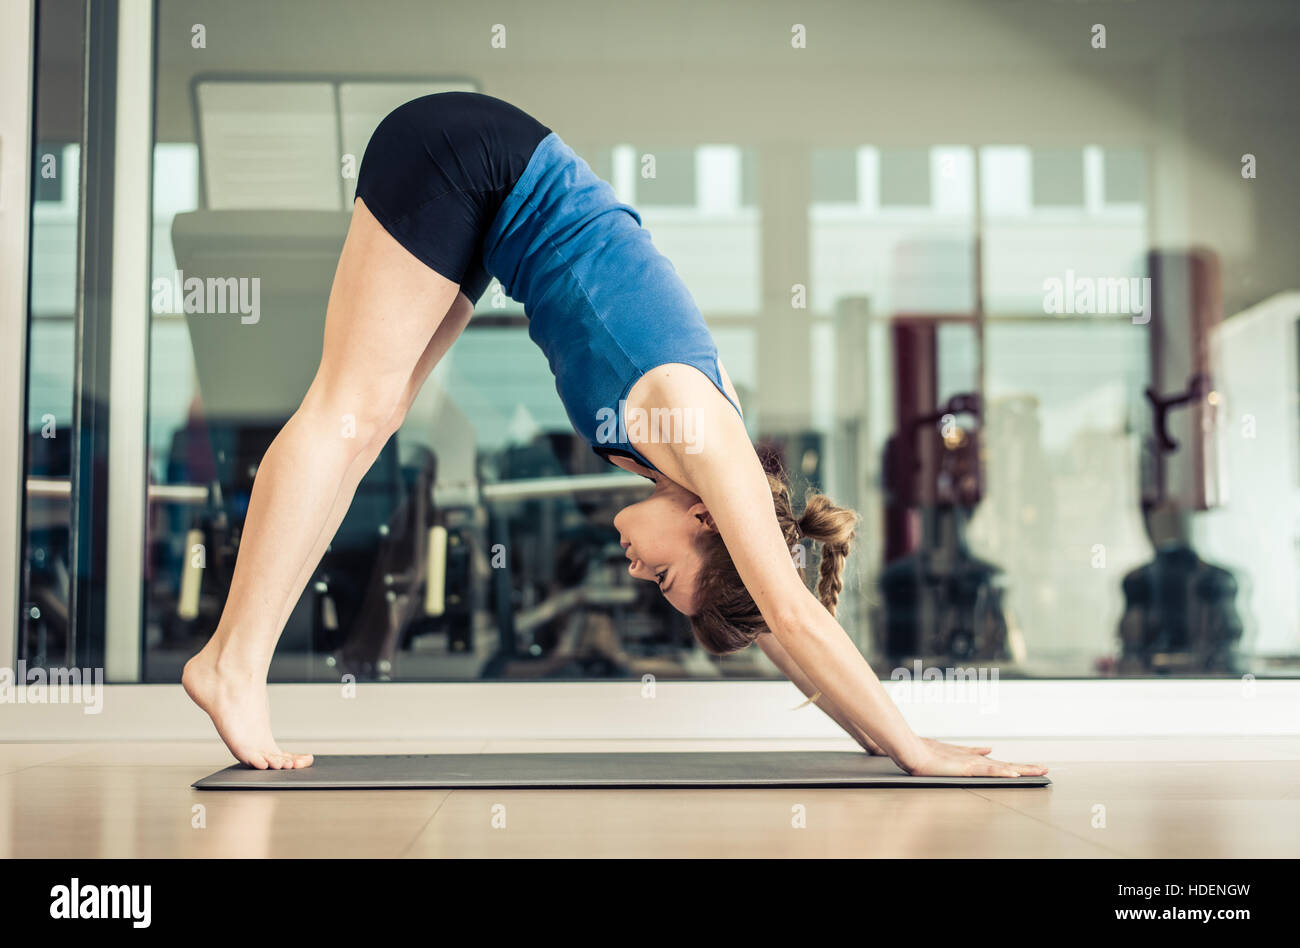 Yoga Pose Daily Routine Stretching Stock Photos & Yoga Pose